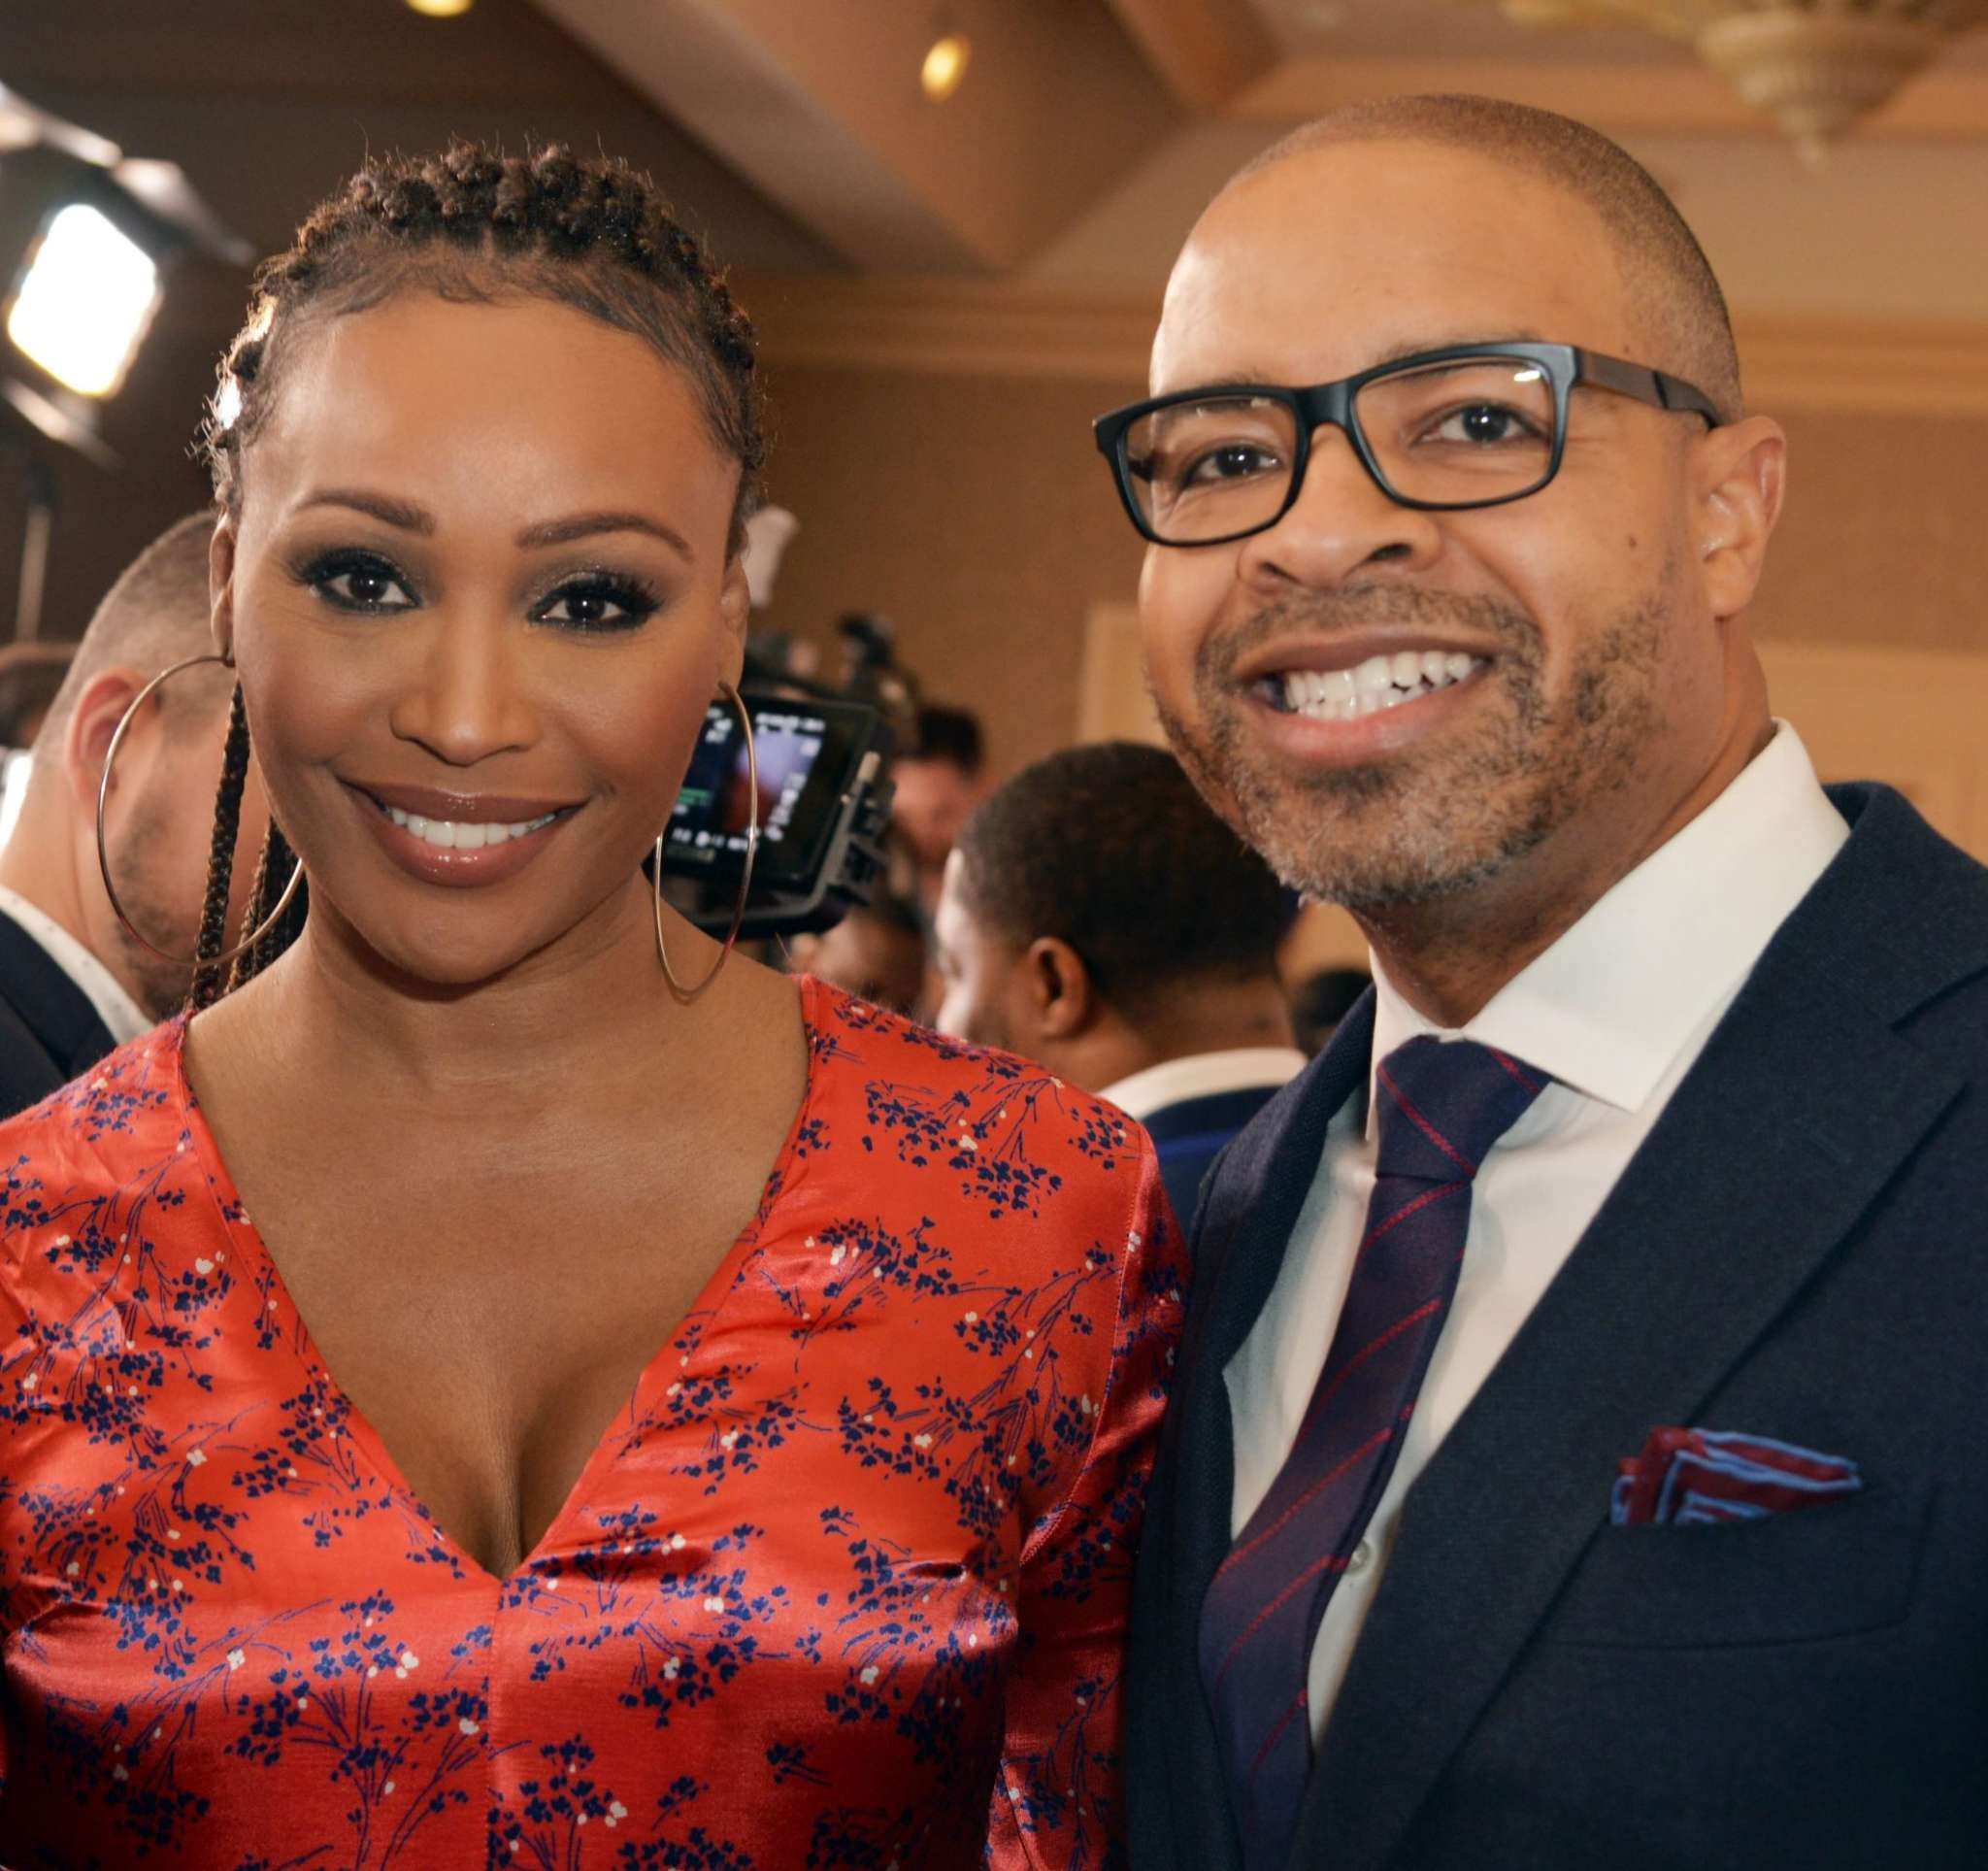 """cynthia-bailey-has-the-time-of-her-life-in-turks-and-caicos-islands"""